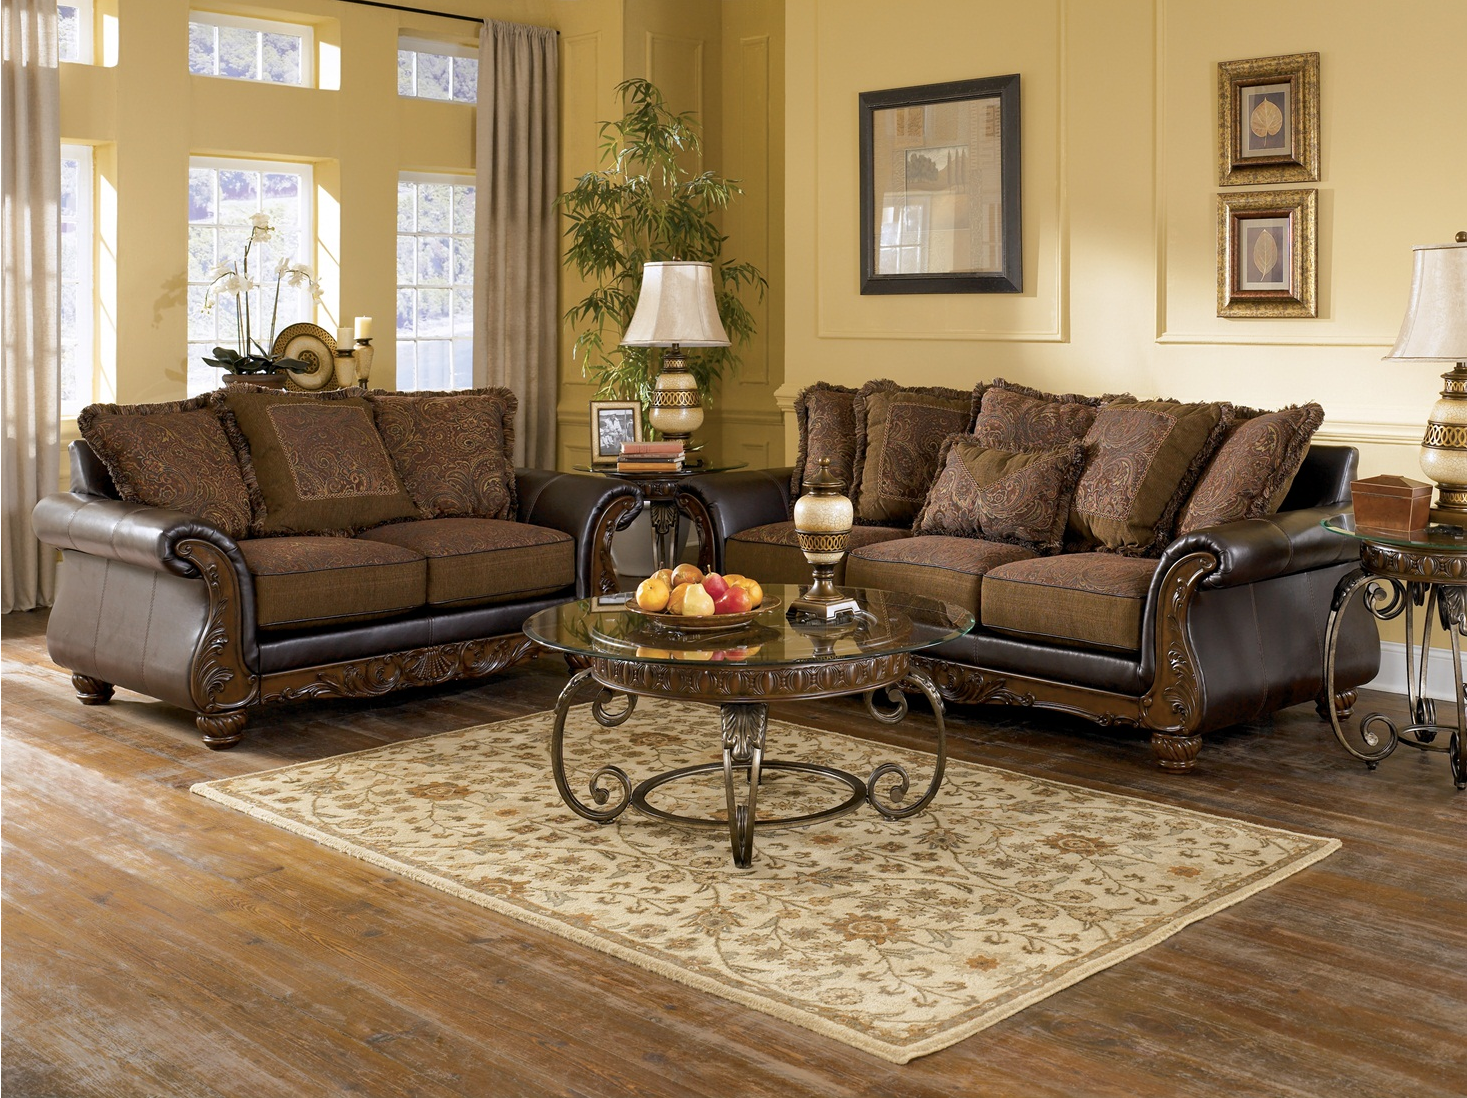 Wilmington Traditional Living Room Furniture Set by Ashley